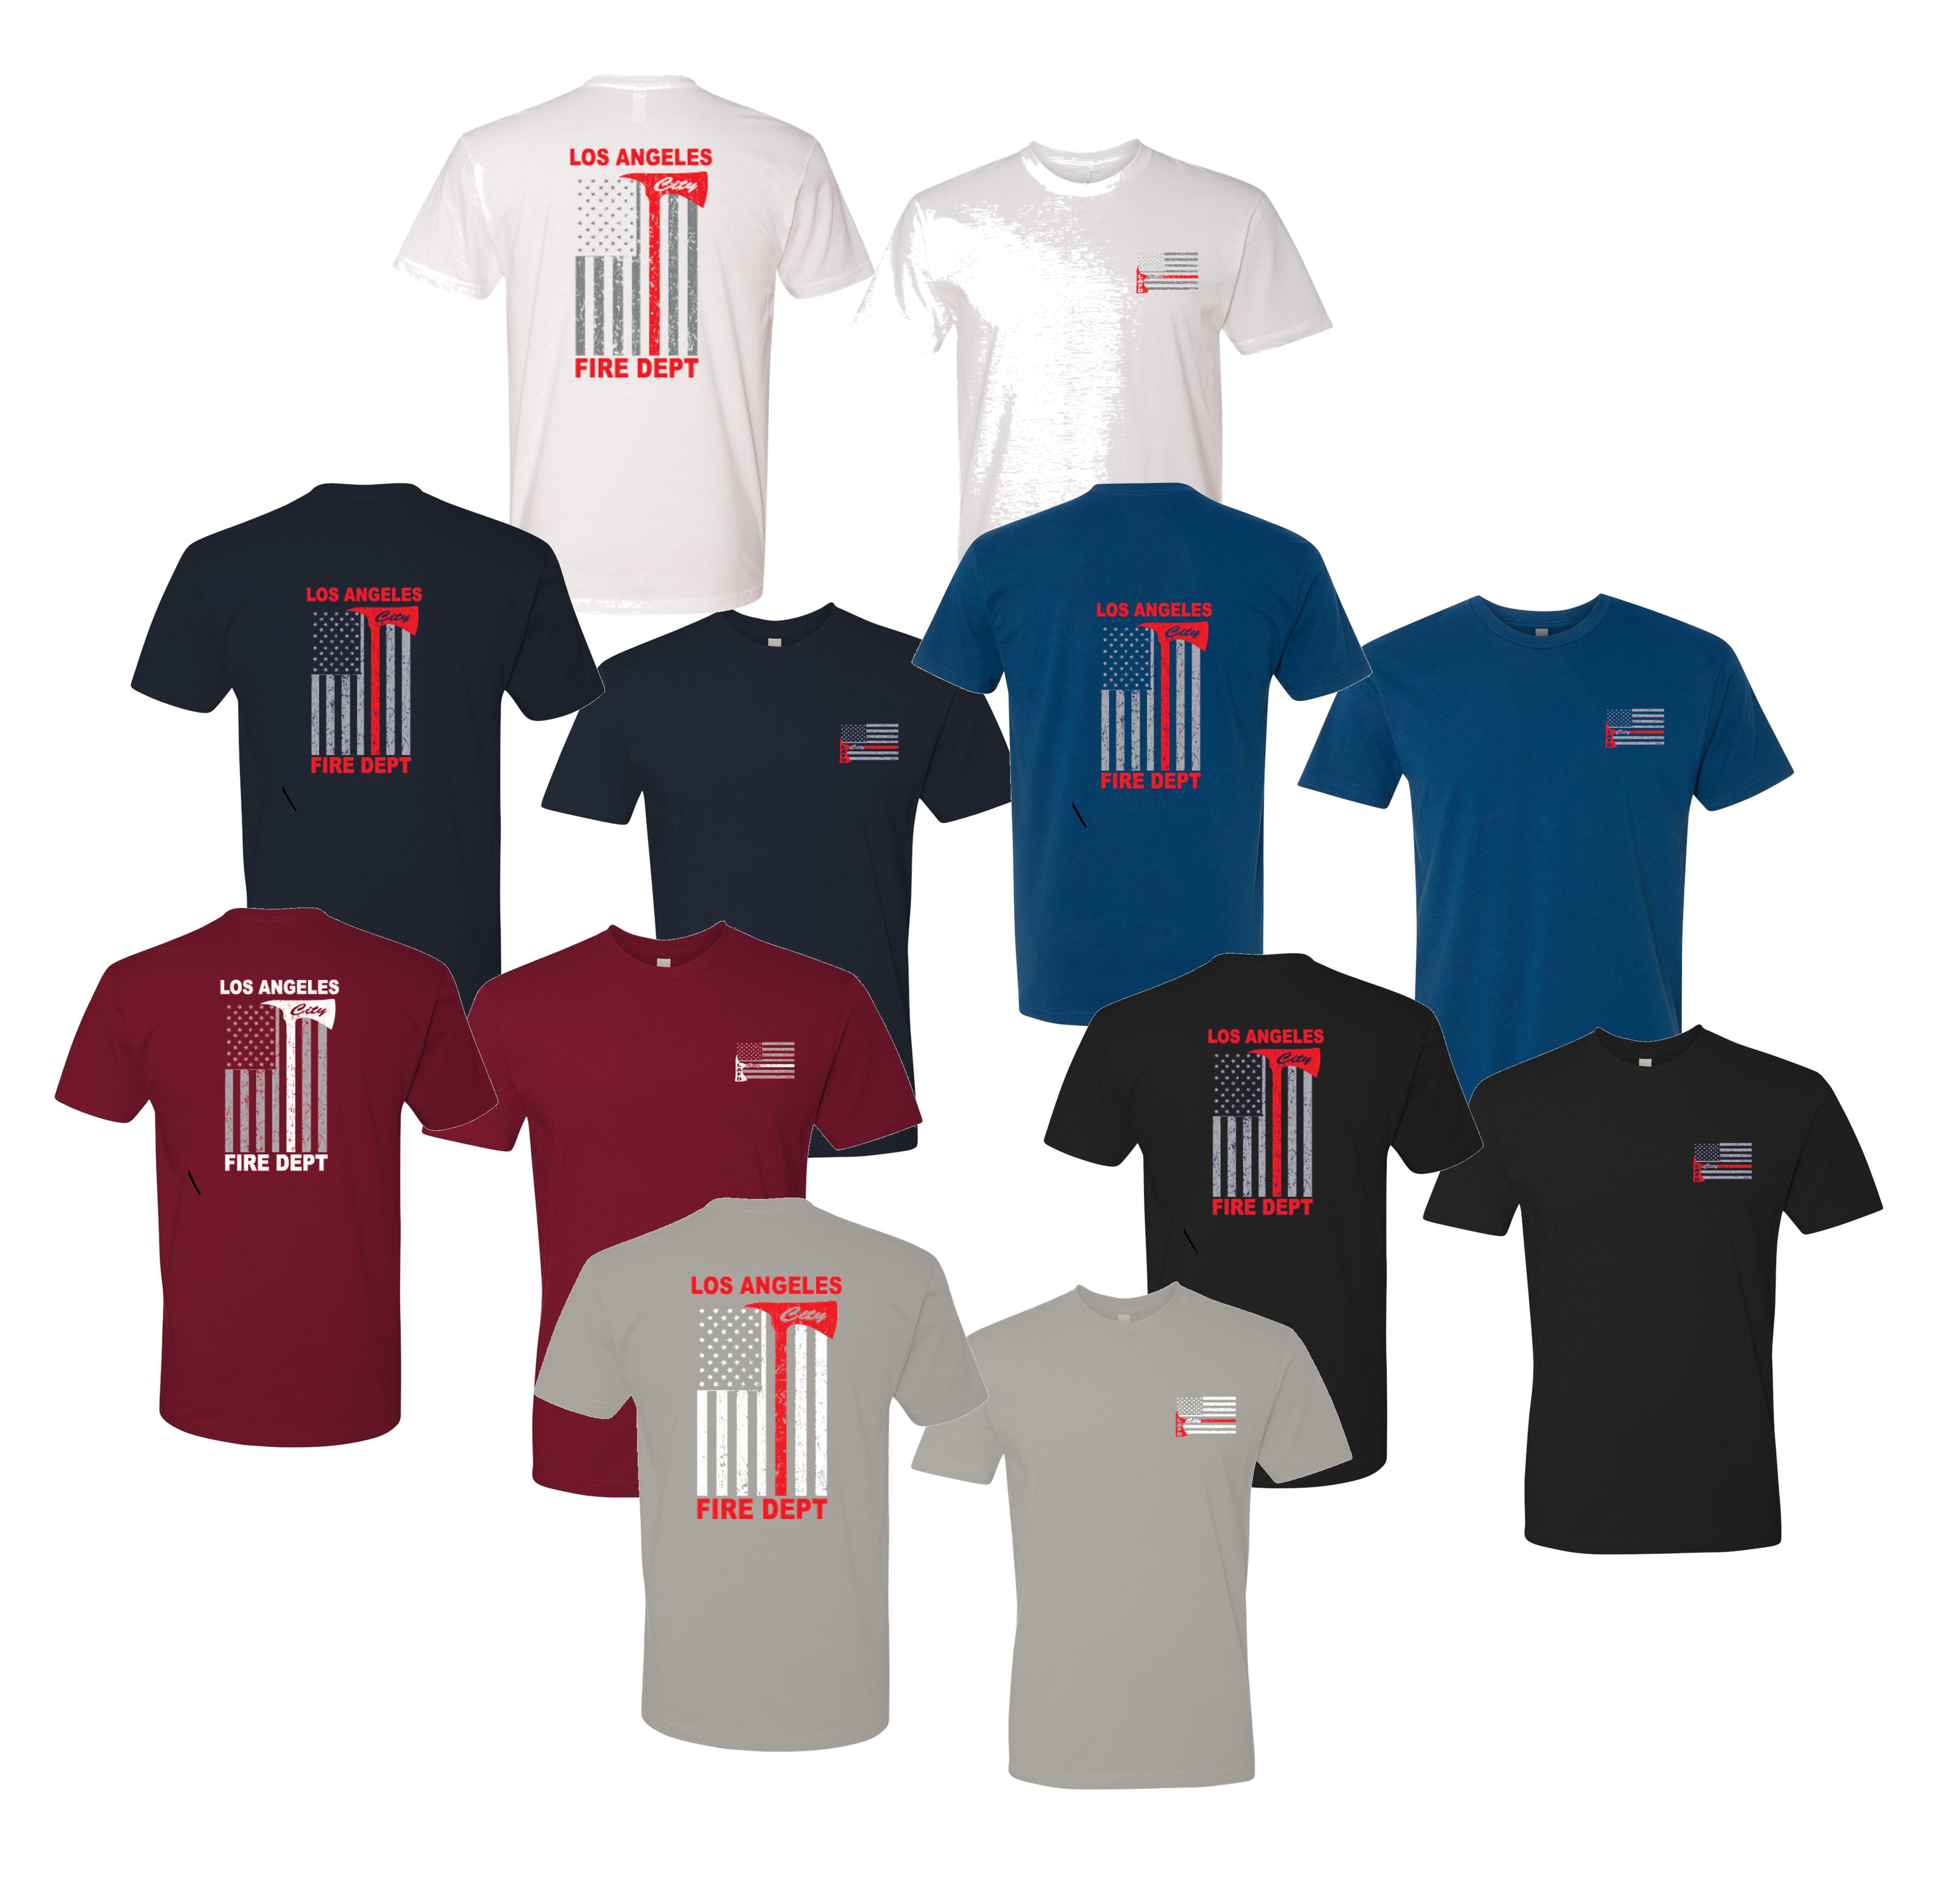 new concept 8cf9f 86e5c Los Angeles City Fire Thin Red Line T-shirt Distressed ...